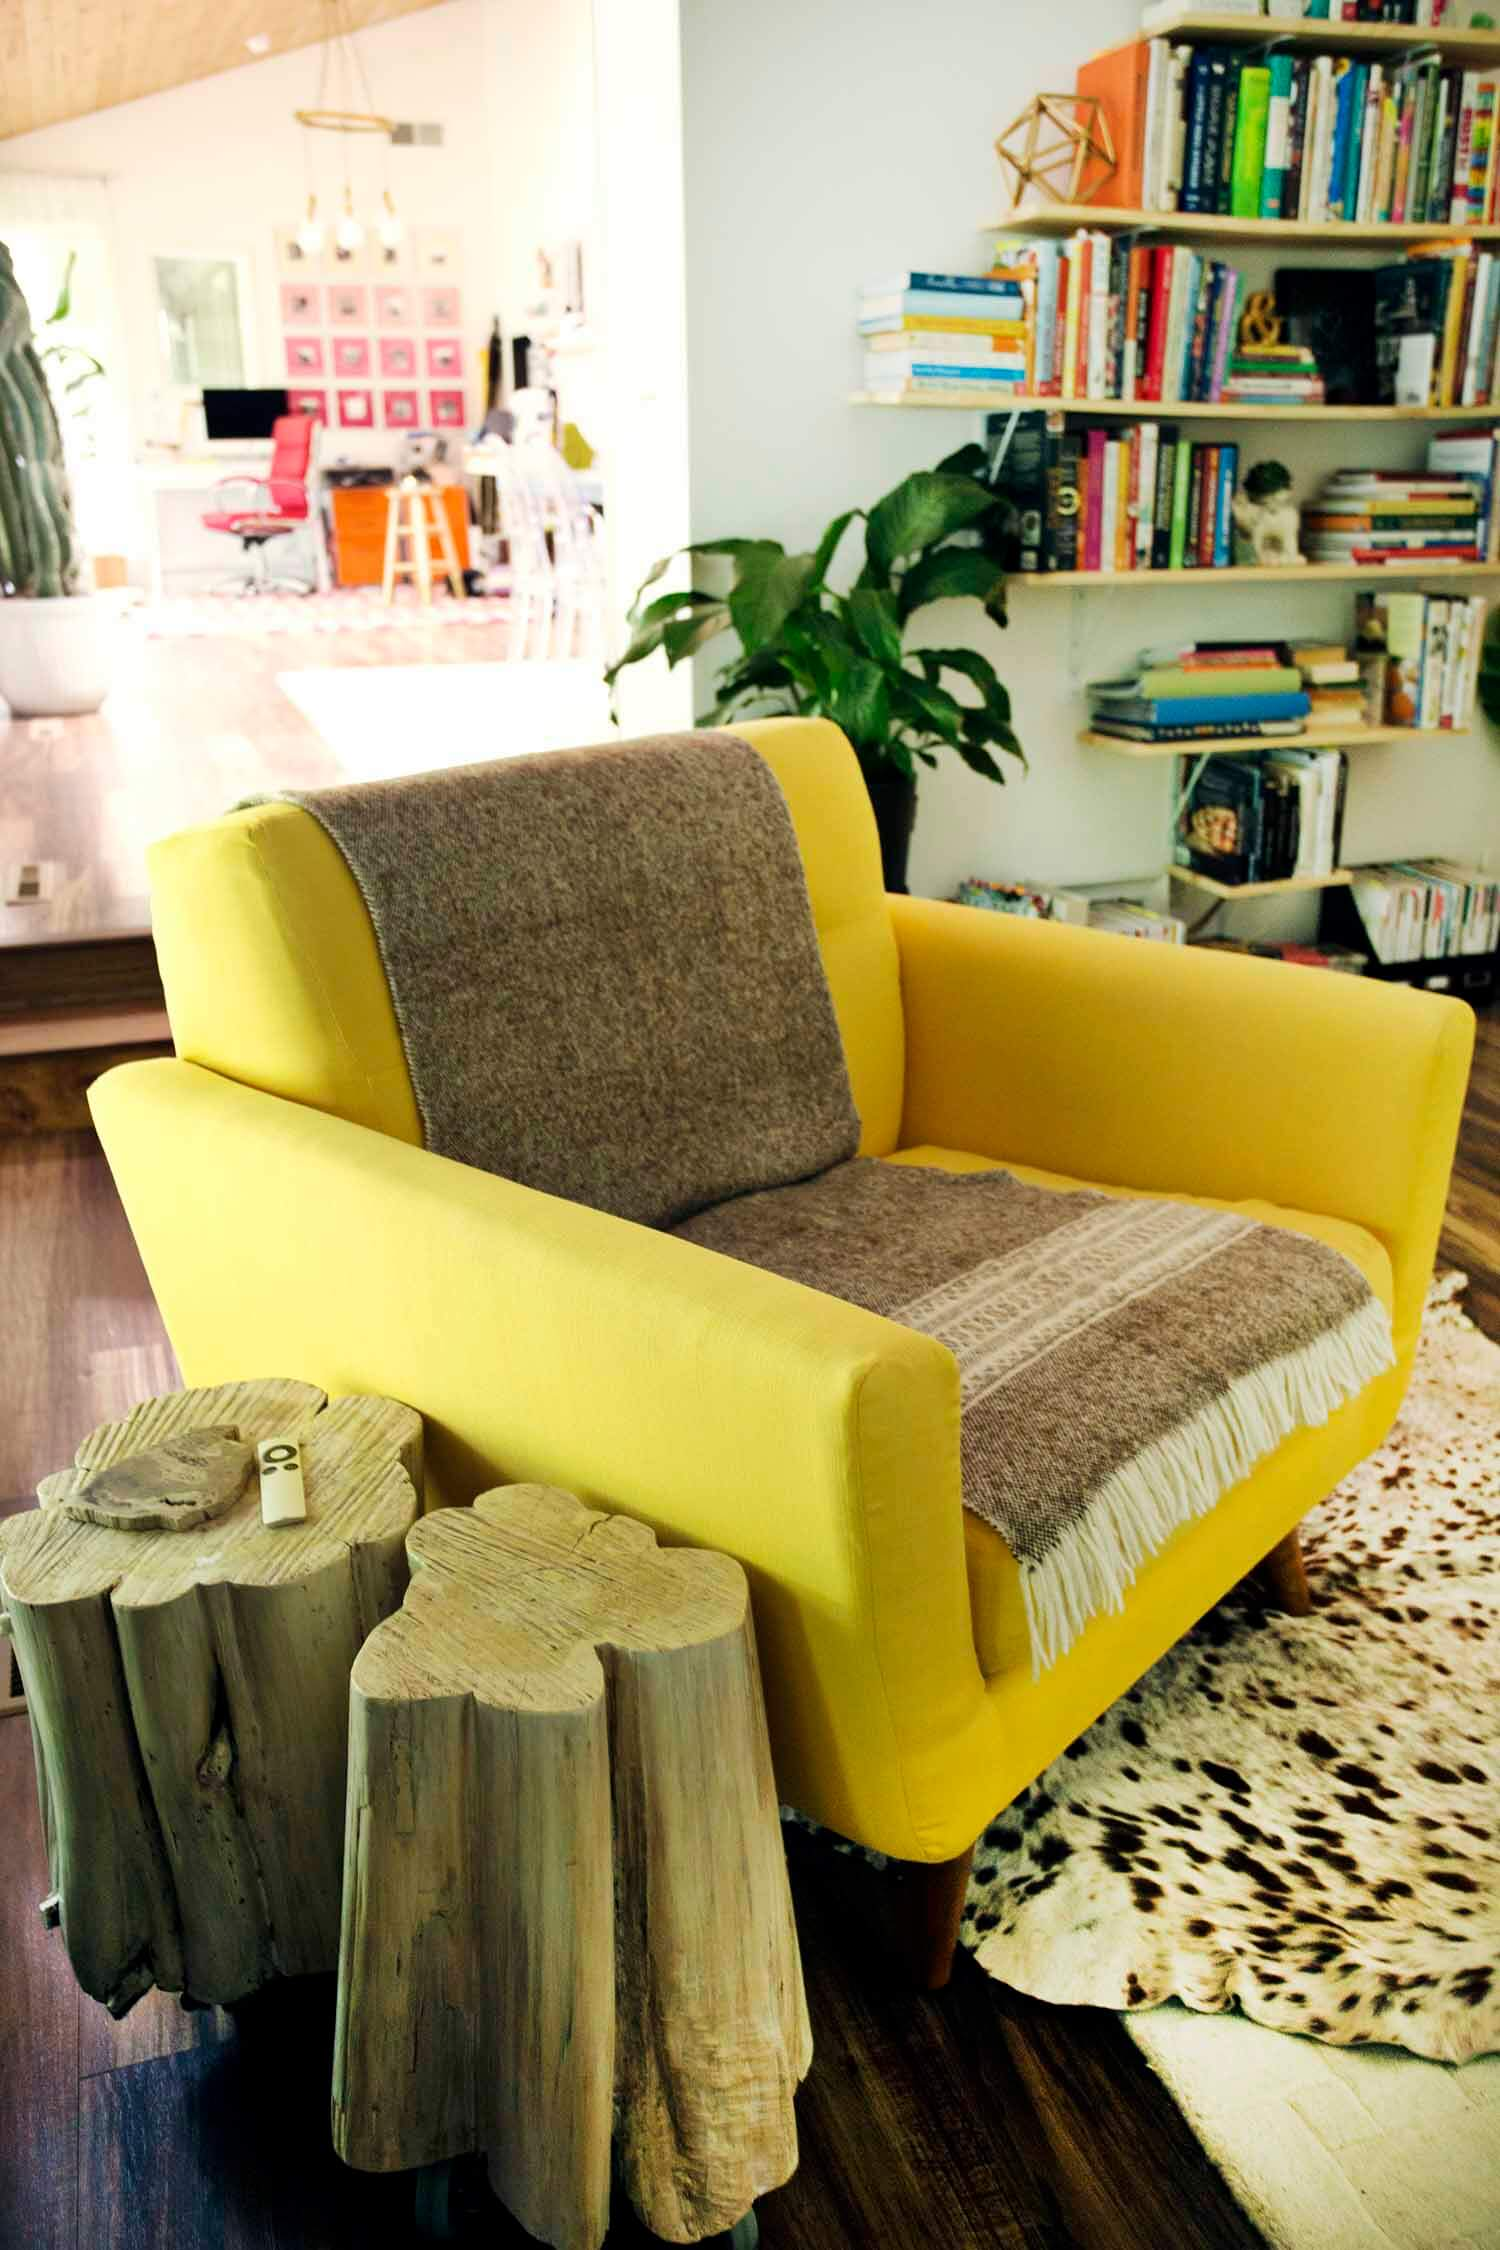 Yellow arm chair